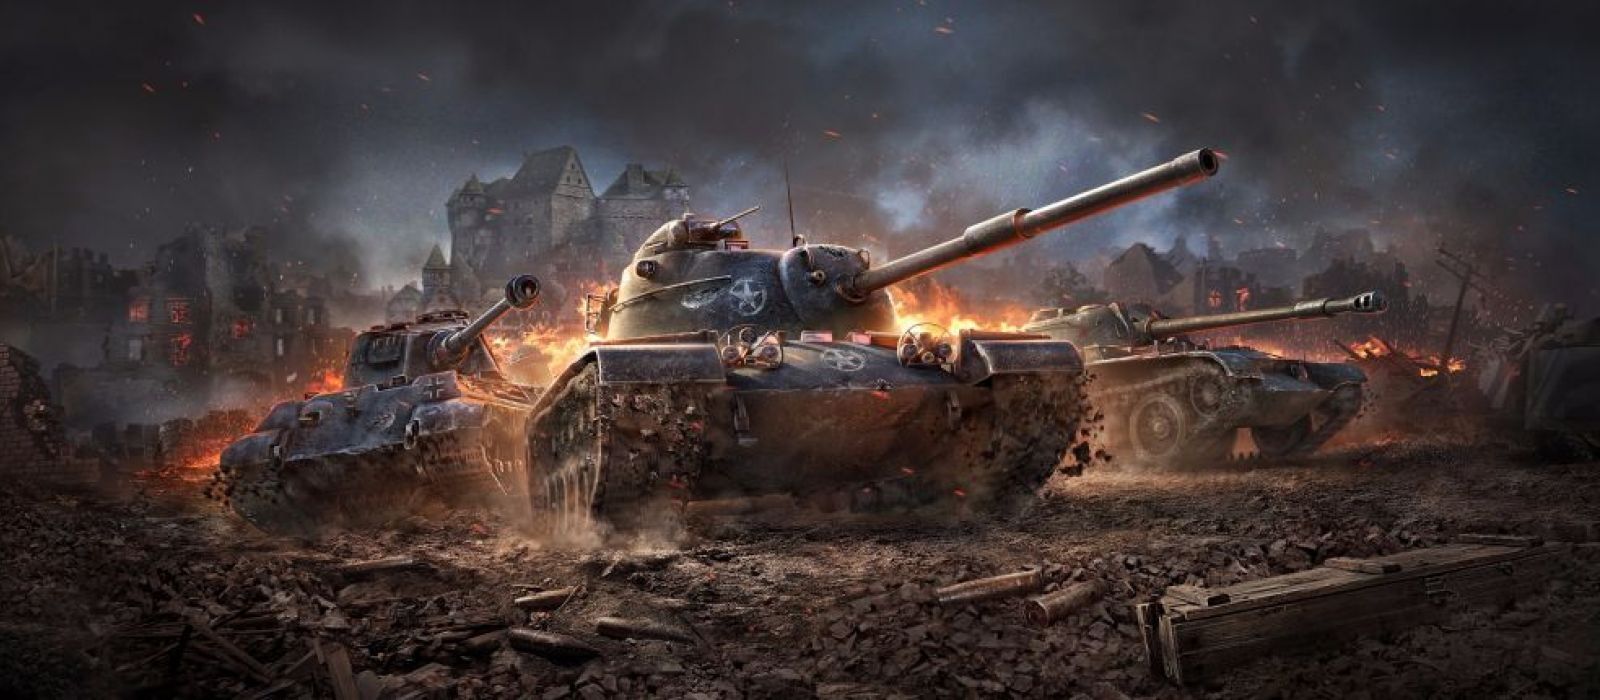 Разработчик World of Tanks студия Wargaming объединилась с Splash Damage